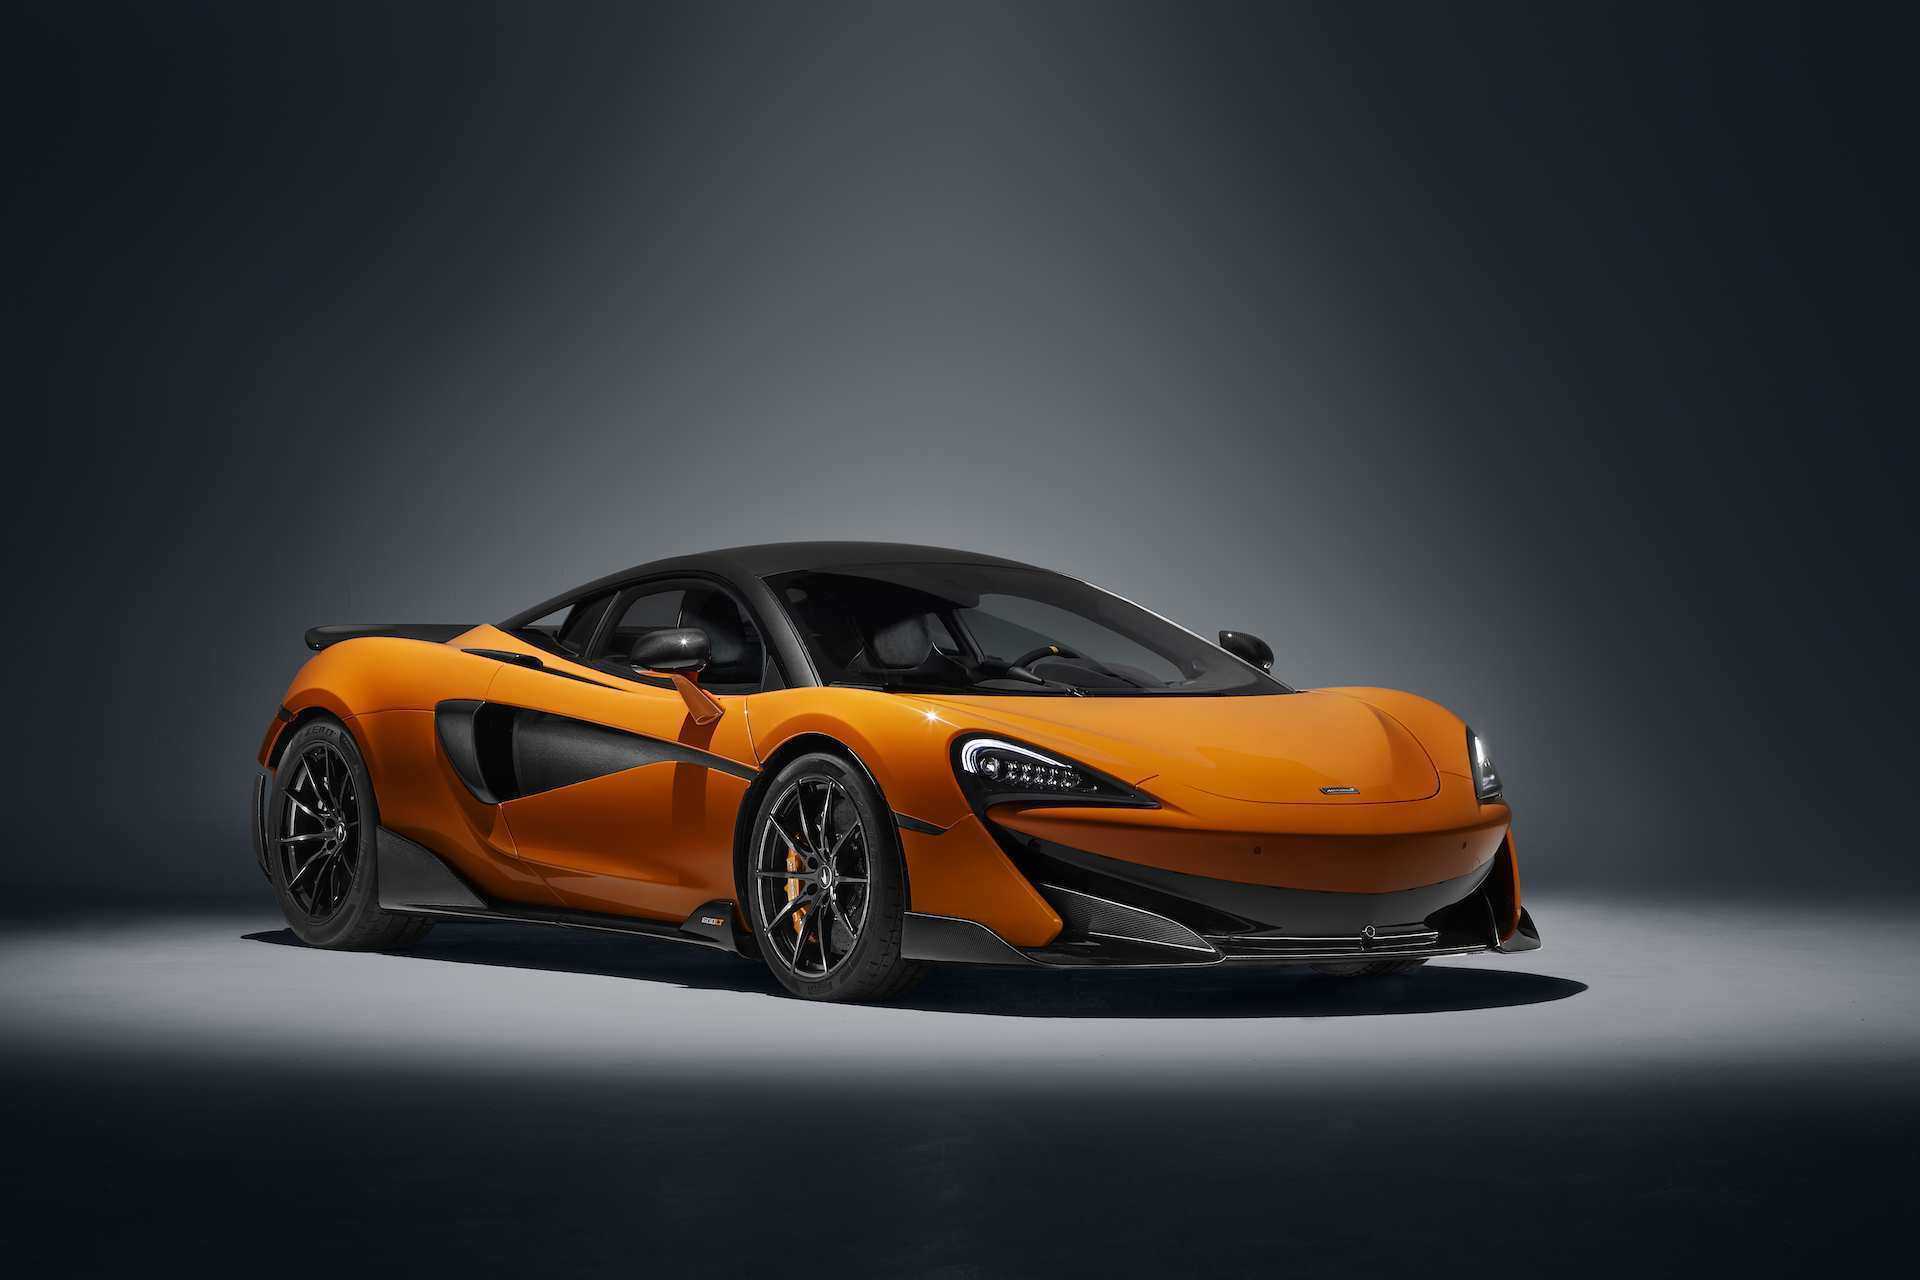 40 Concept of 2019 Mclaren 600Lt Specs with 2019 Mclaren 600Lt